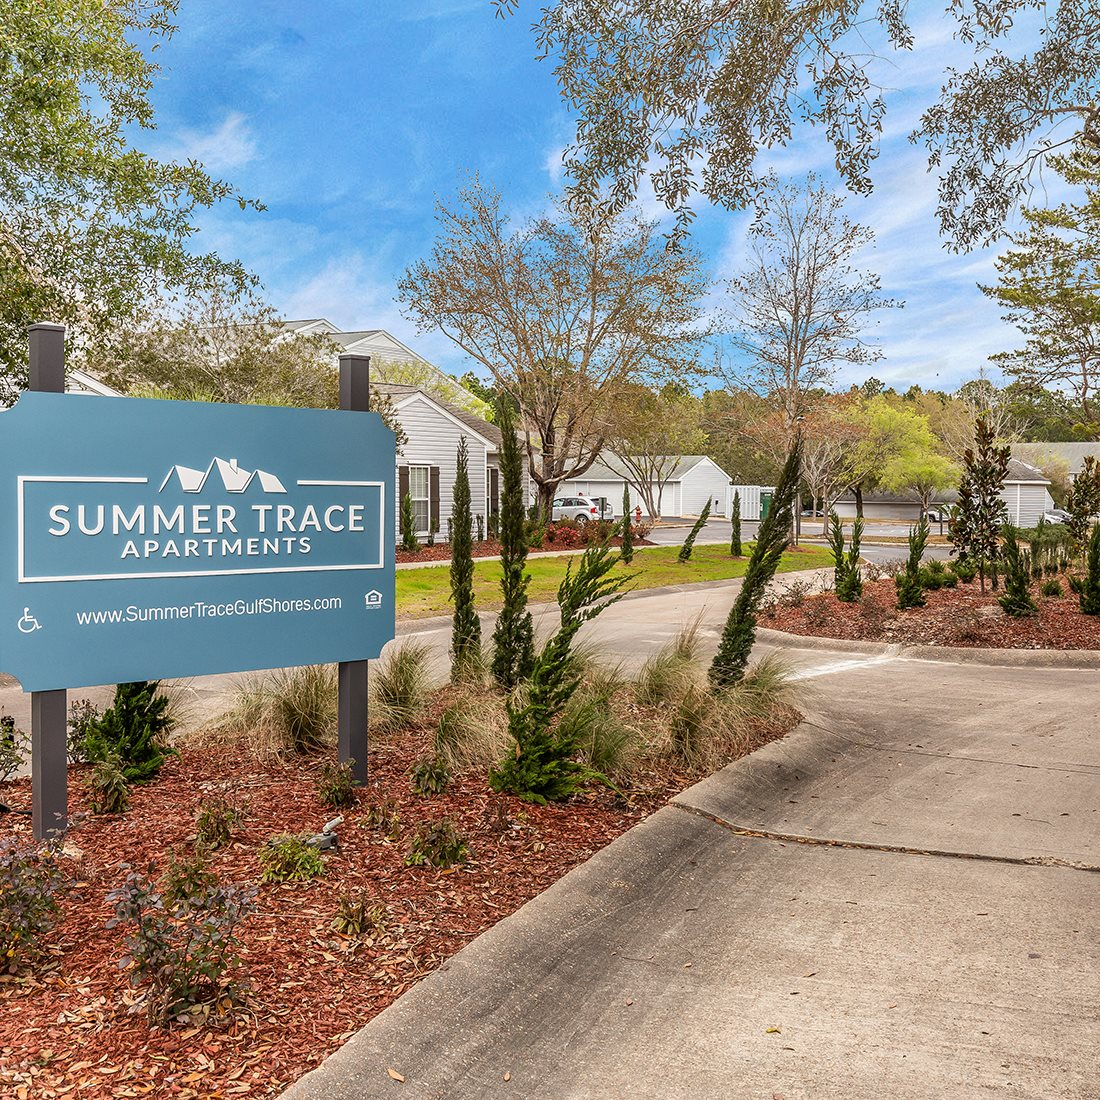 exterior entrance sign at Summer Trace apartments in Gulf Shores AL